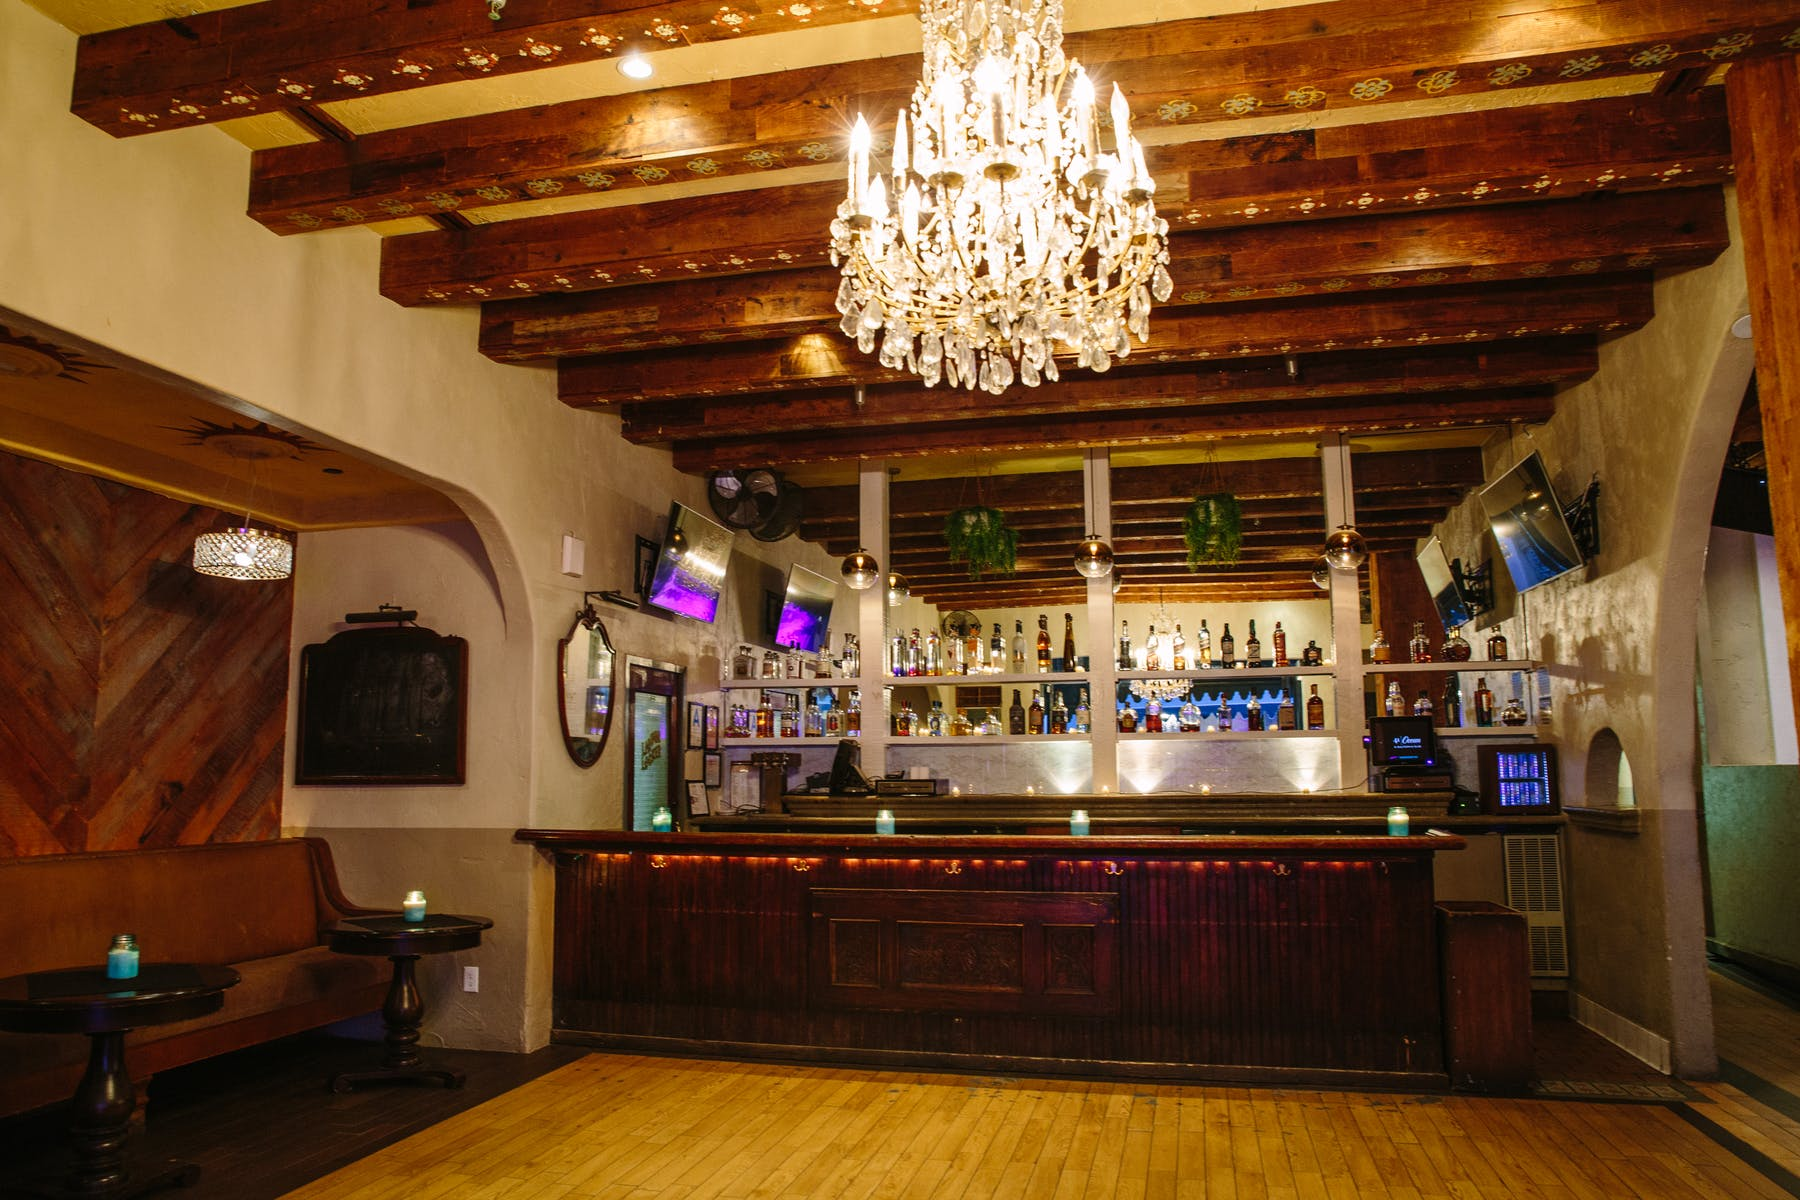 a large room with a yellow carpet filled with a bar, counter, a shelf topped with bottles and a chandelier